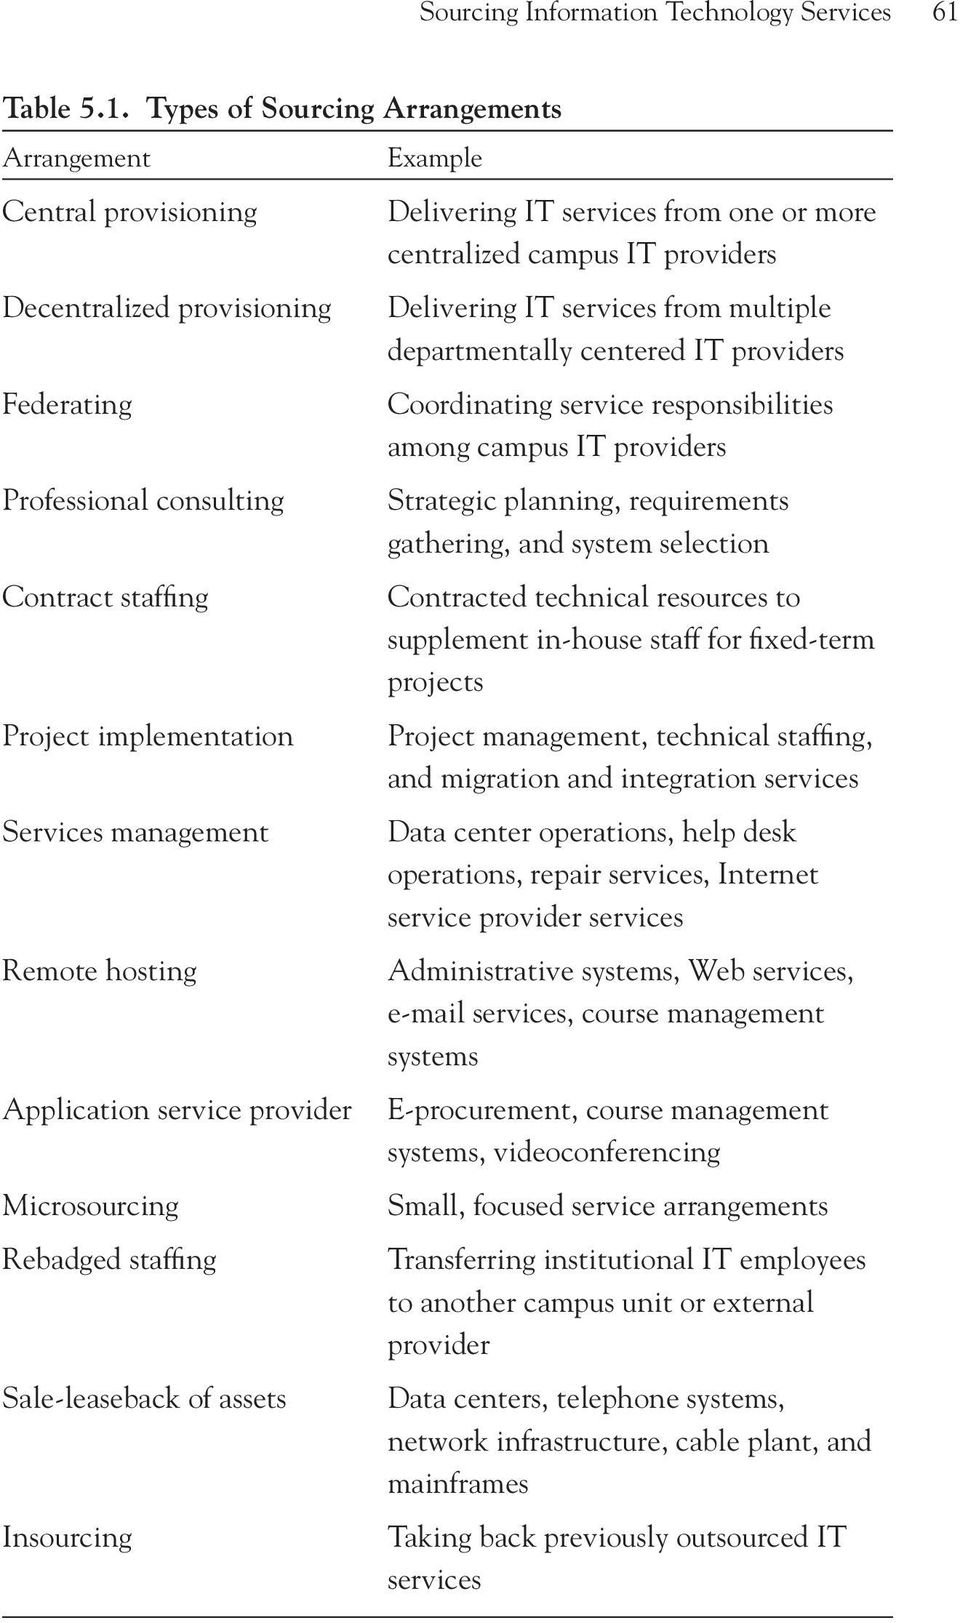 Types of Sourcing Arrangements Arrangement Central provisioning Decentralized provisioning Federating Professional consulting Contract staffing Project implementation Services management Remote